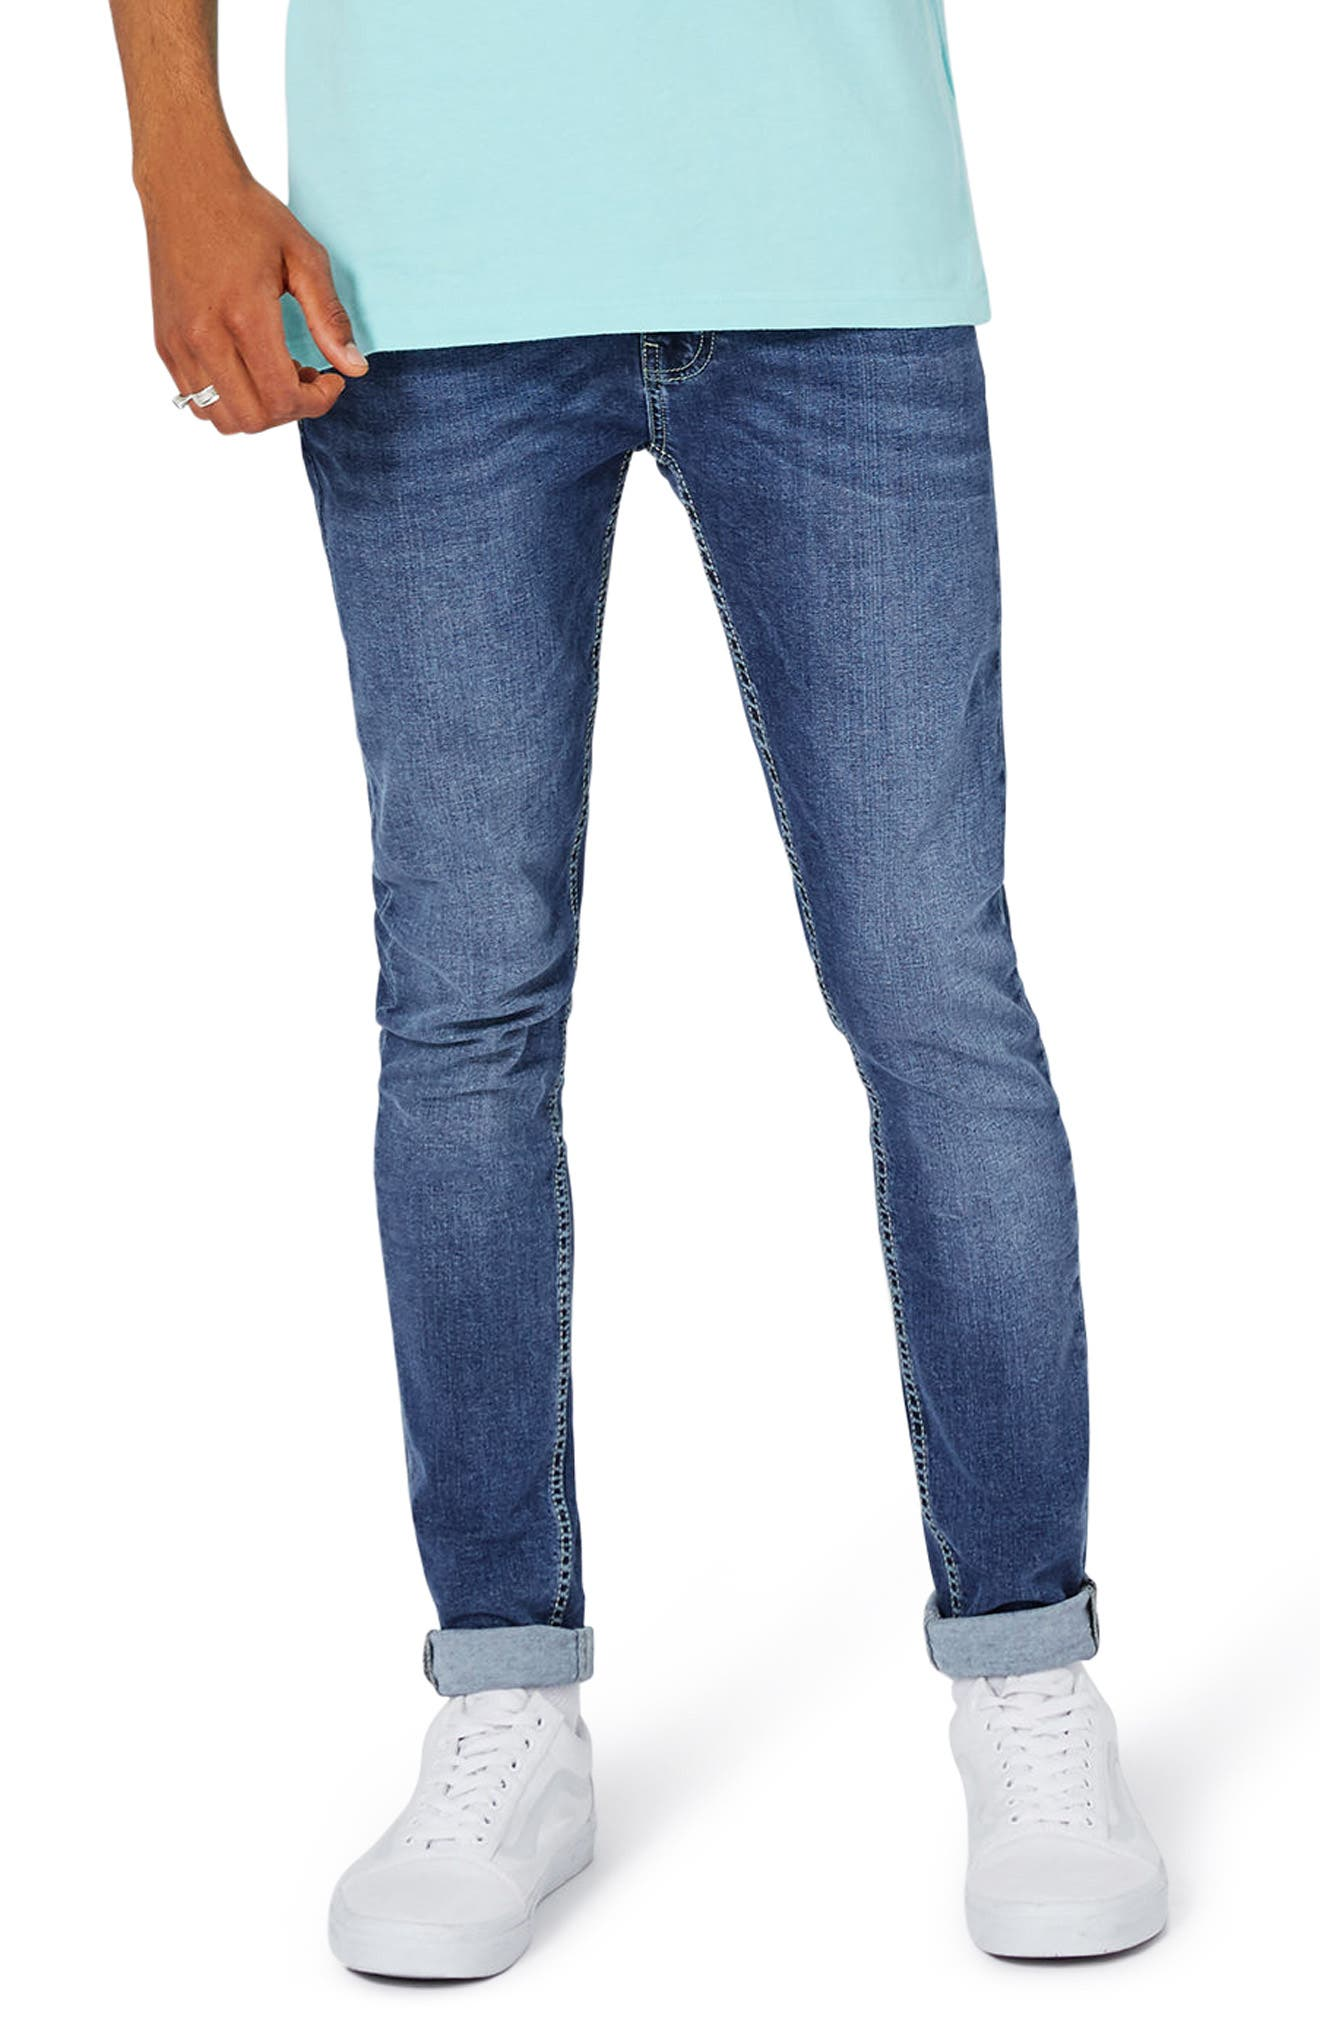 Spray-On Skinny Fit Jeans,                             Main thumbnail 1, color,                             400